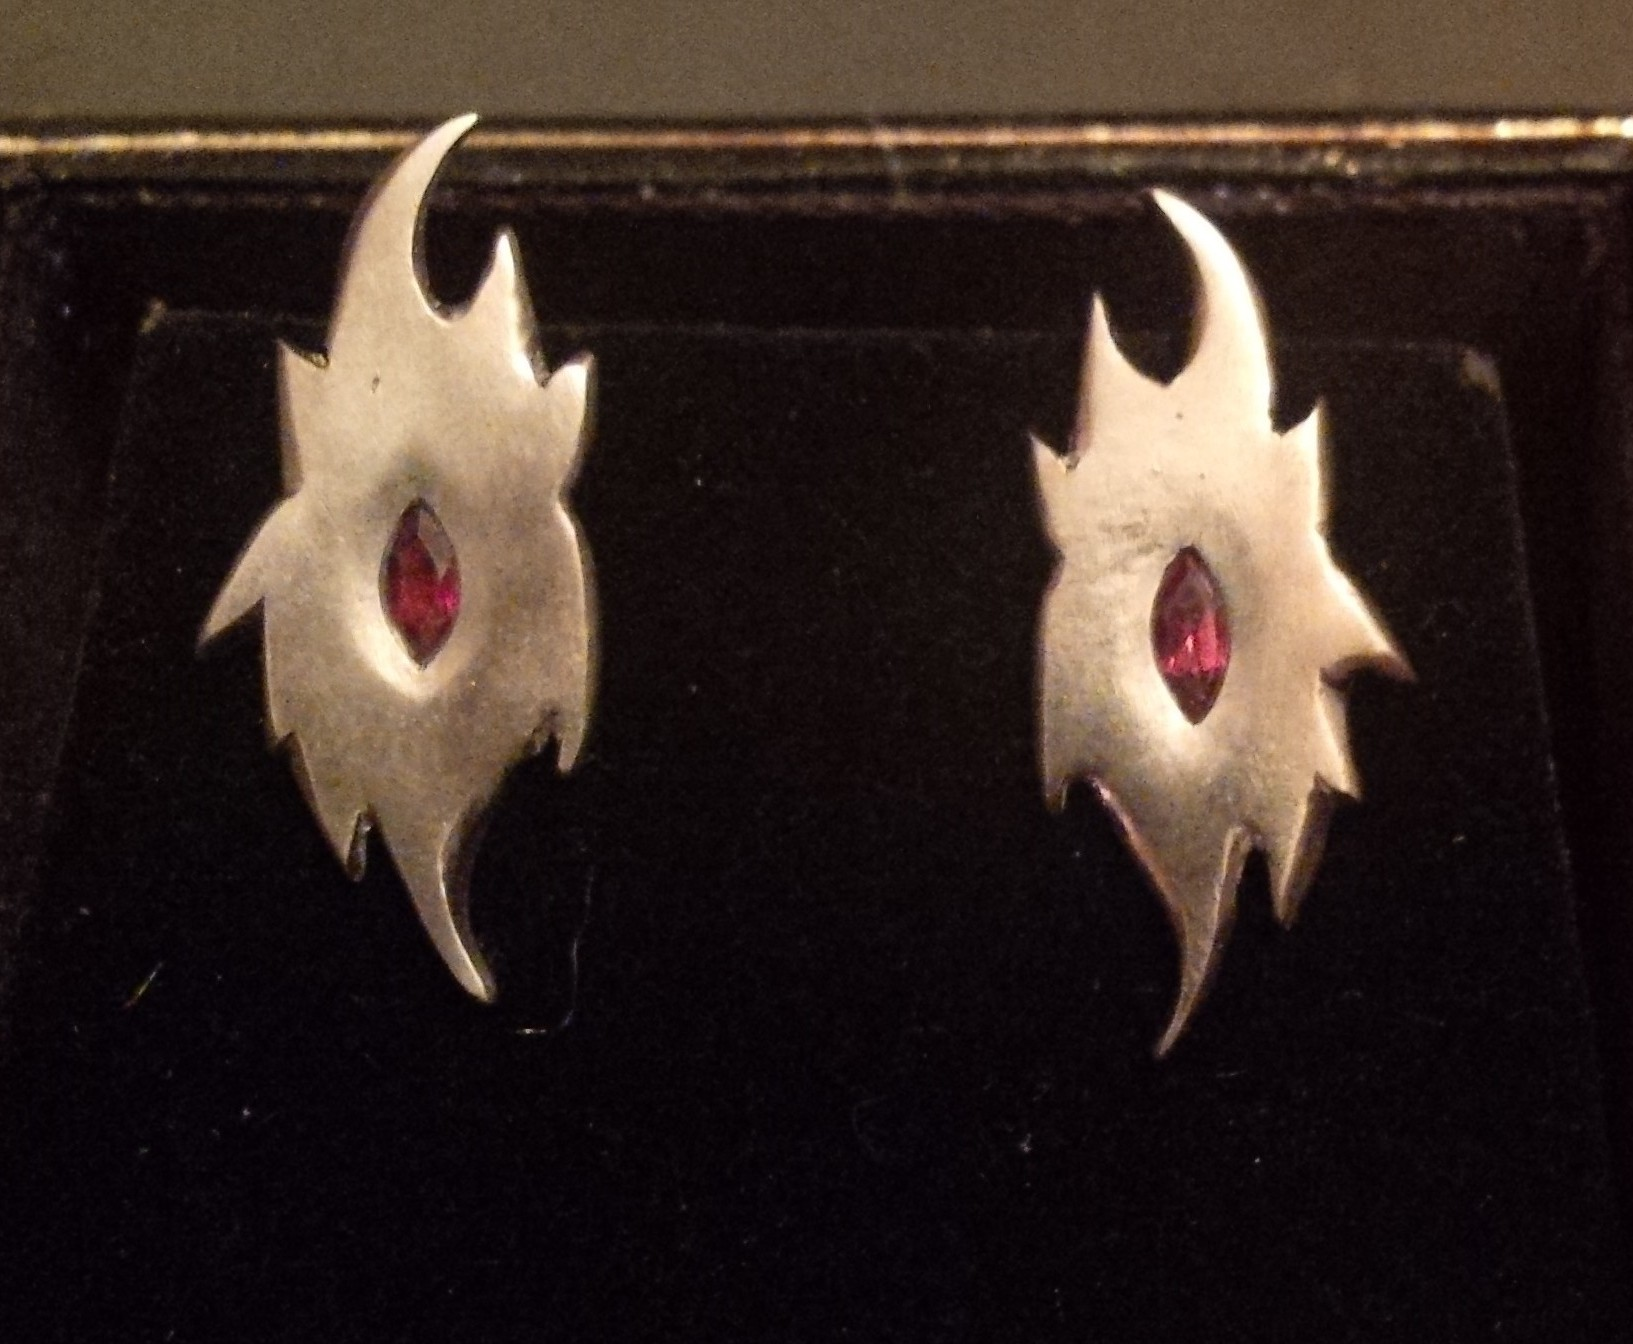 Silver earrings with marquise cut garnets - NOT FOR SALE